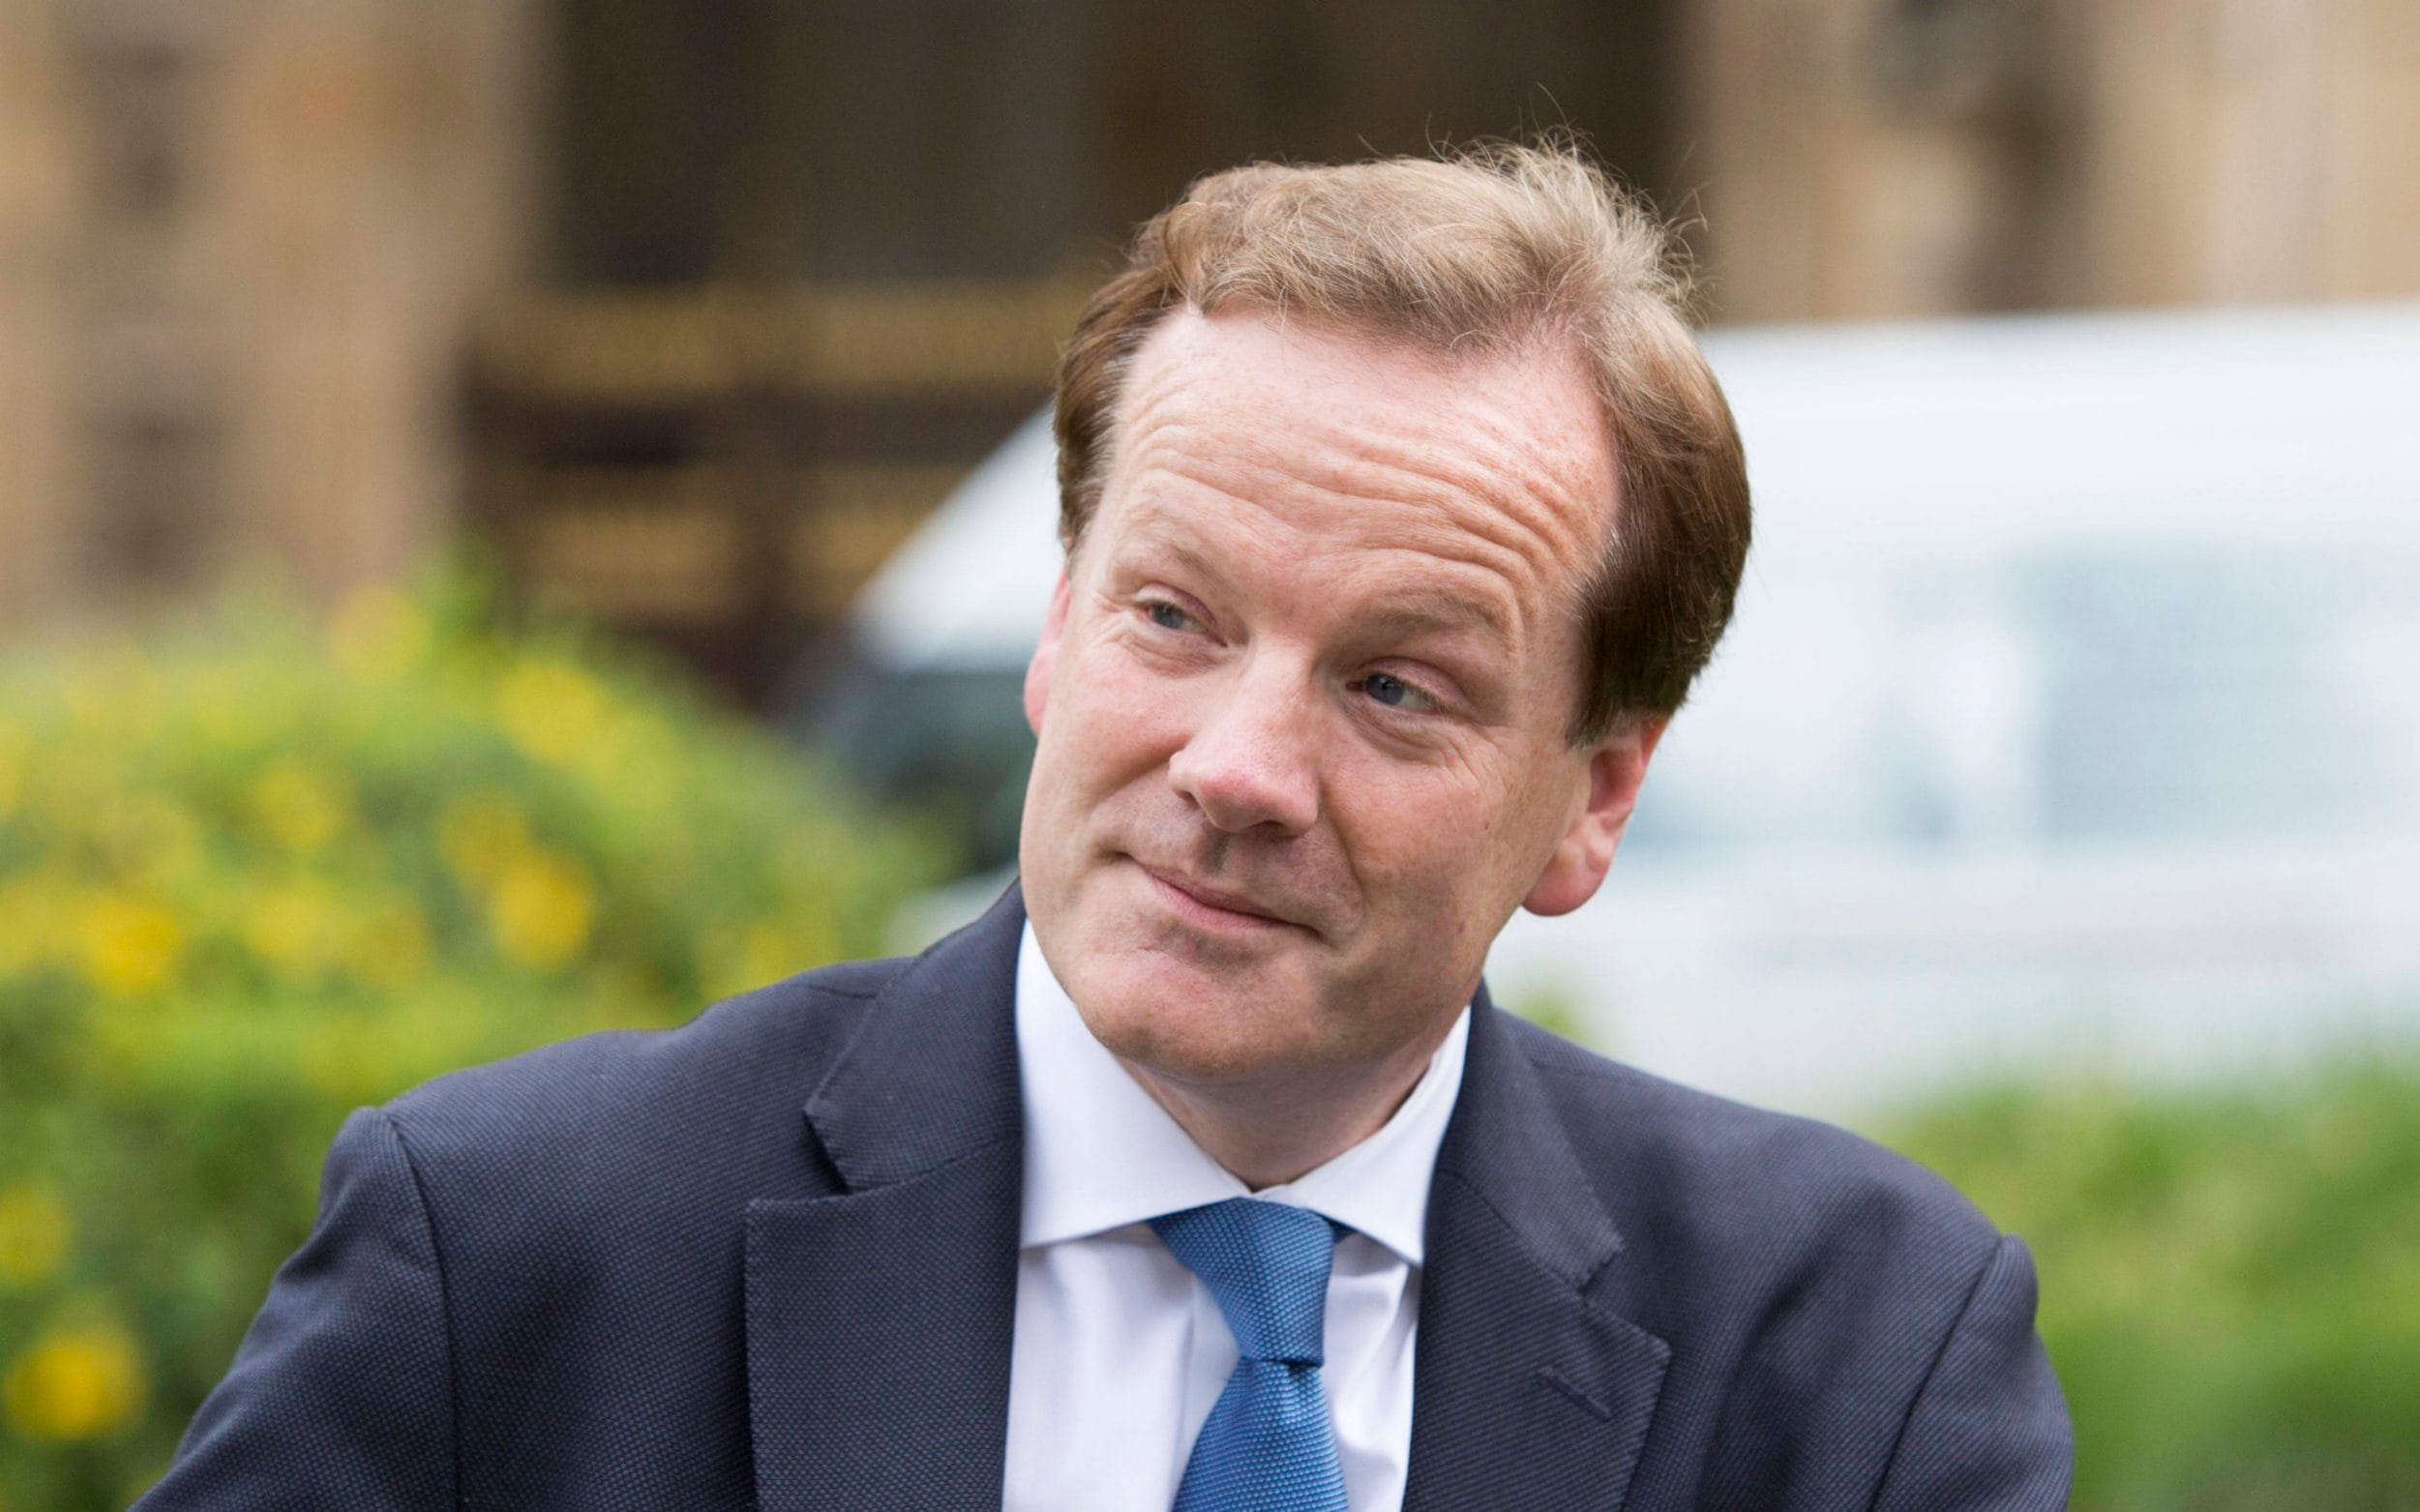 Charlie Elphicke Mp Charged With Three Counts Of Sexual